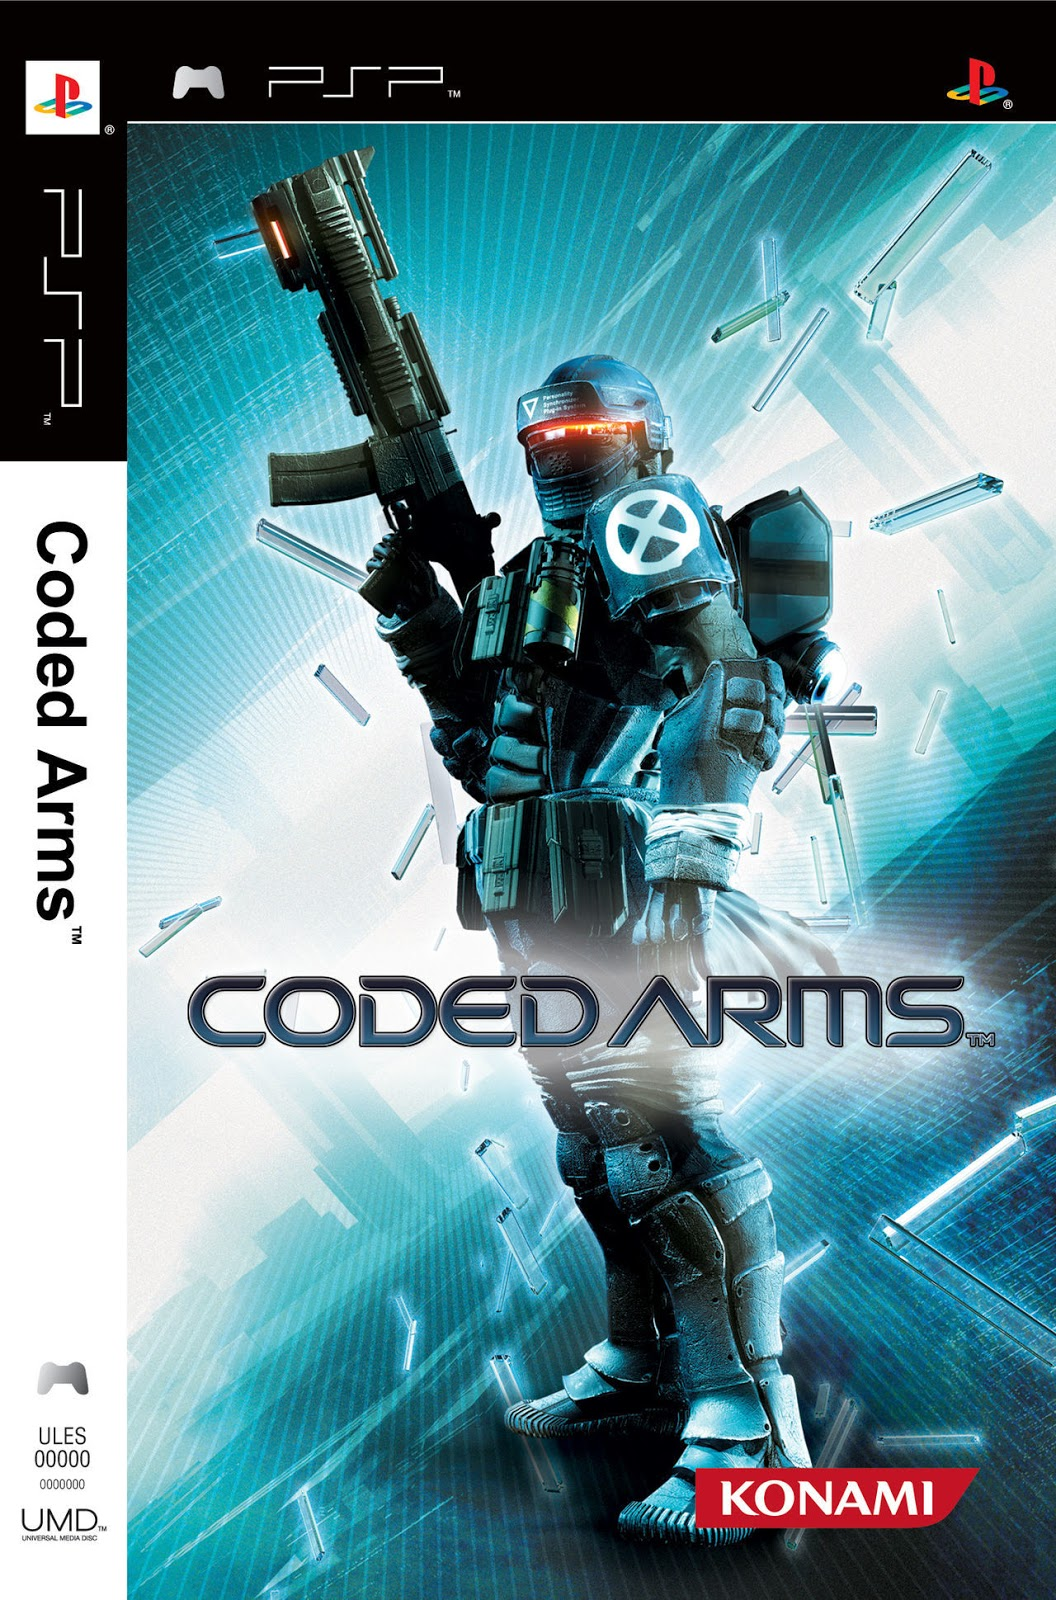 Coded Arms EU ULES00124 CWCheat PSP Cheats, Codes, and Hint